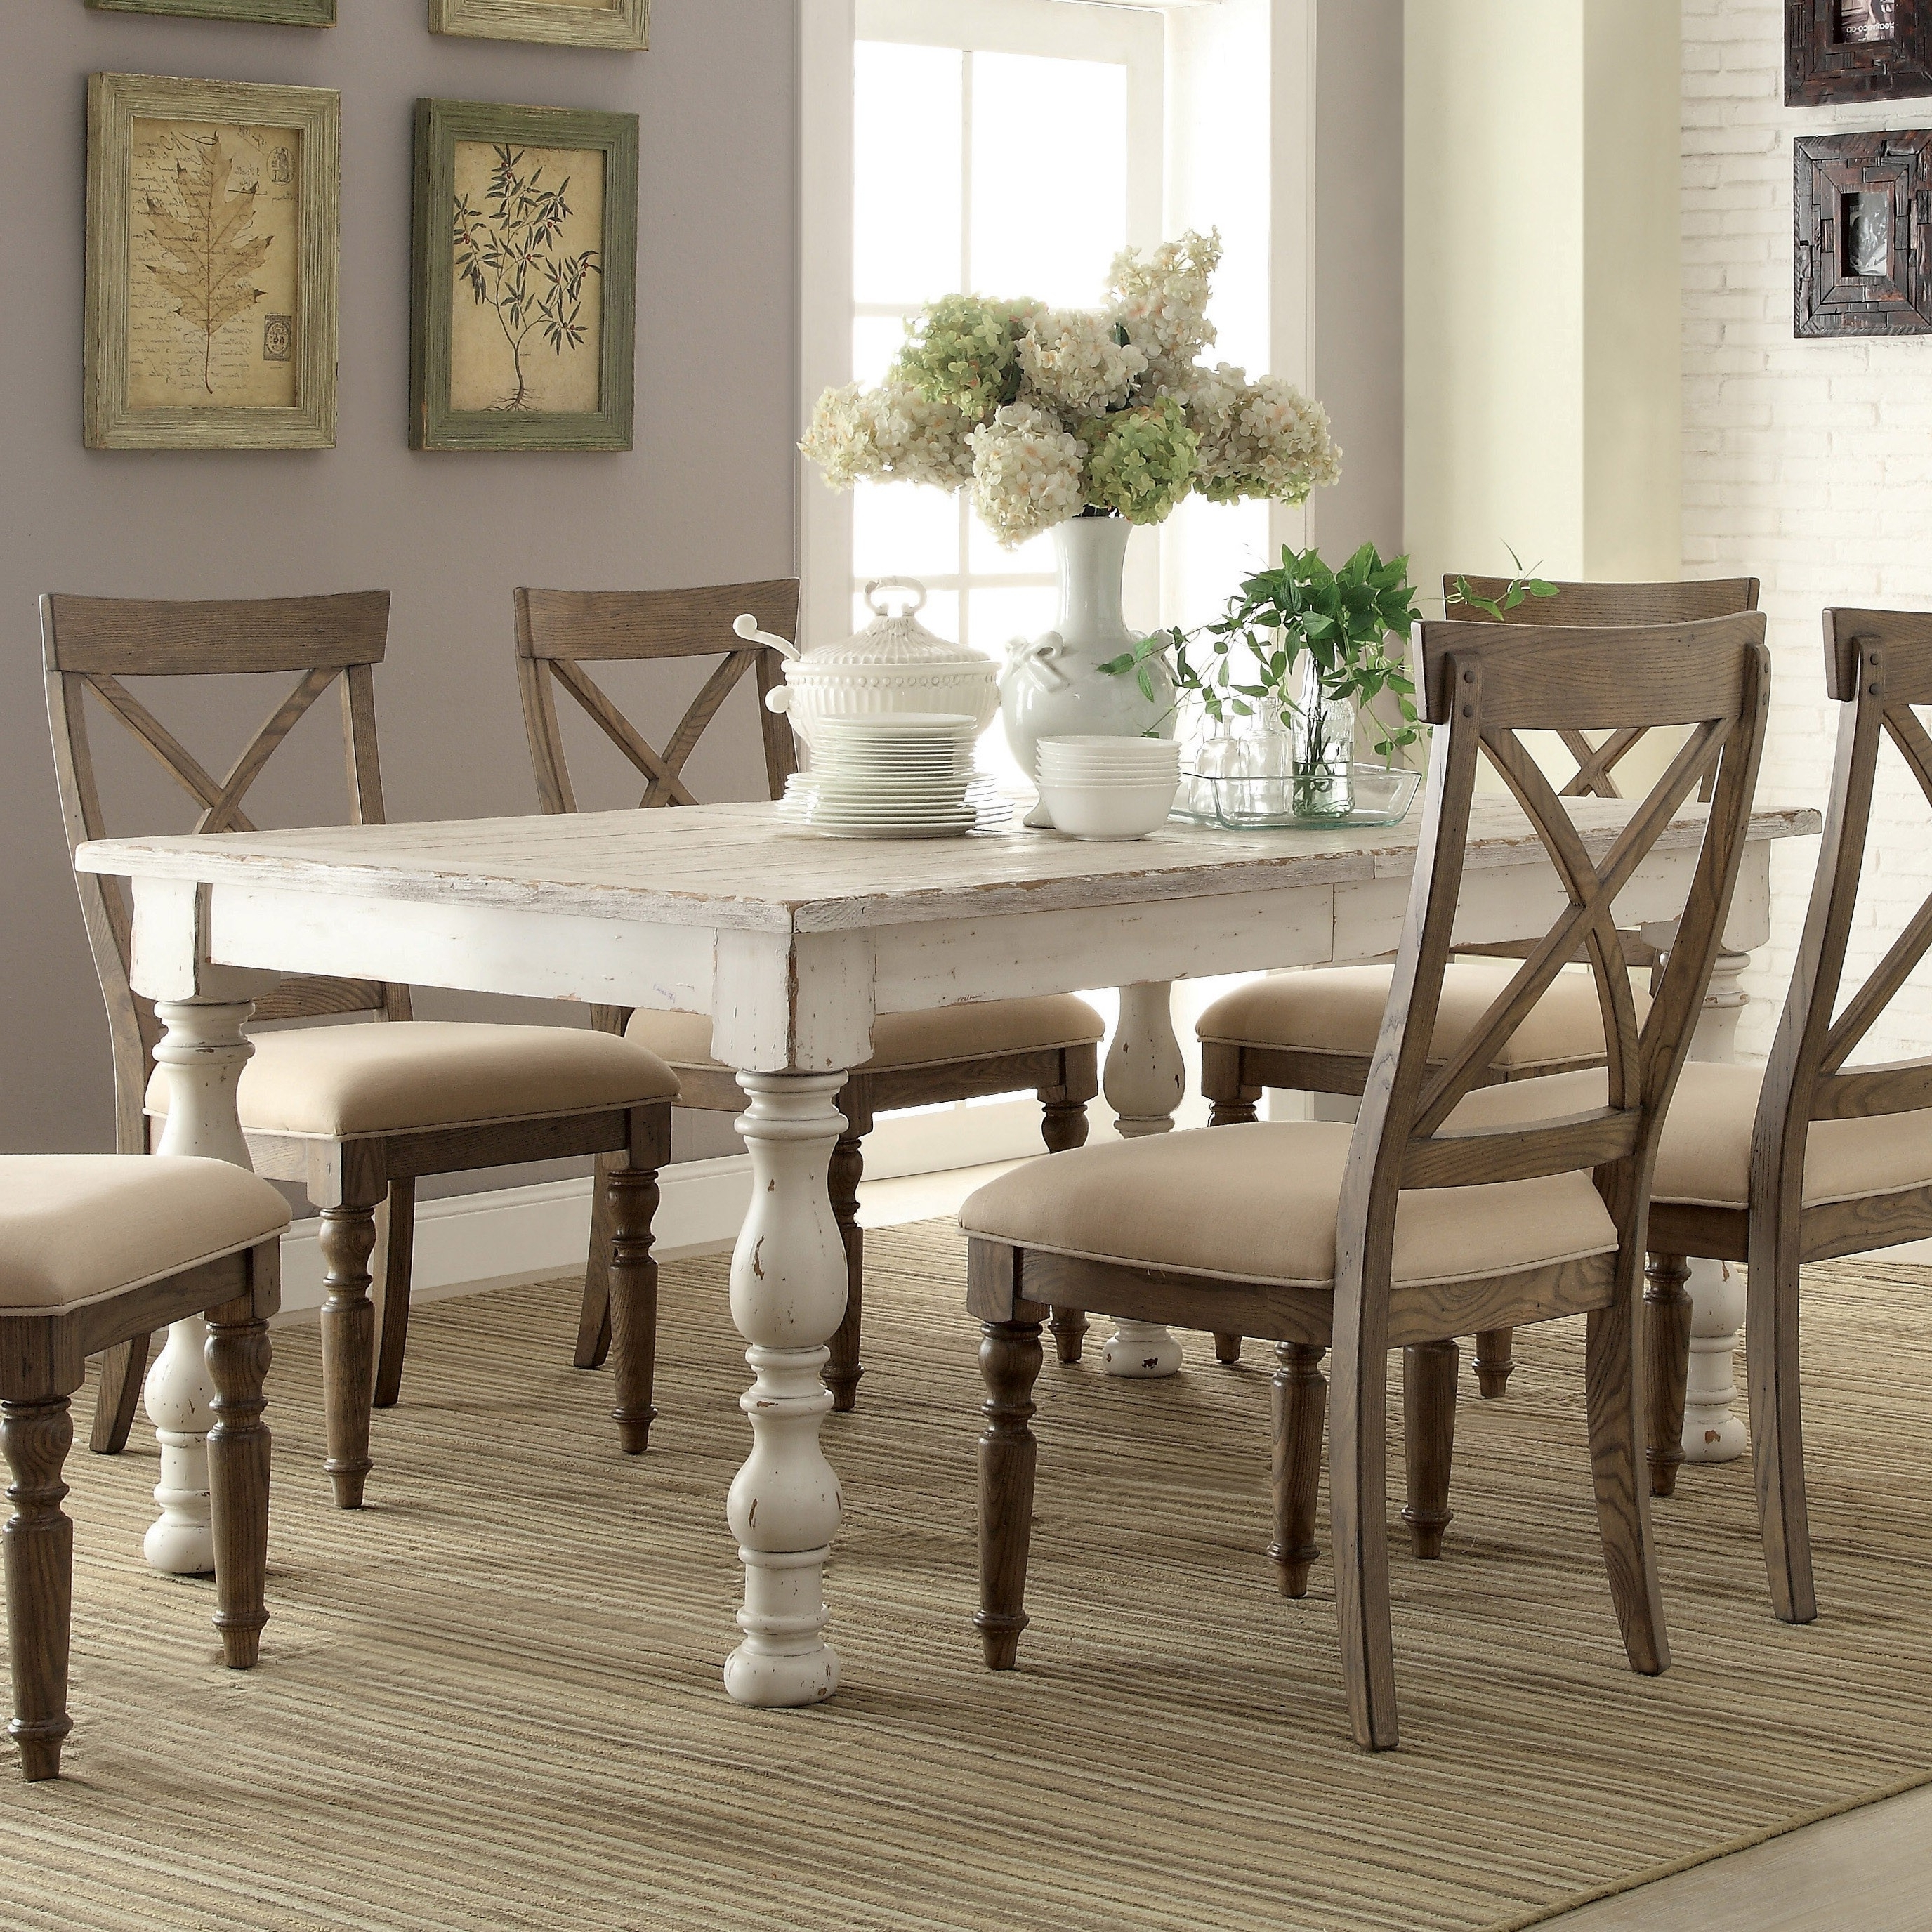 Dark Wood Dining Tables And Chairs For Fashionable High End Dining Tables & Kitchen Table Sets (View 7 of 25)